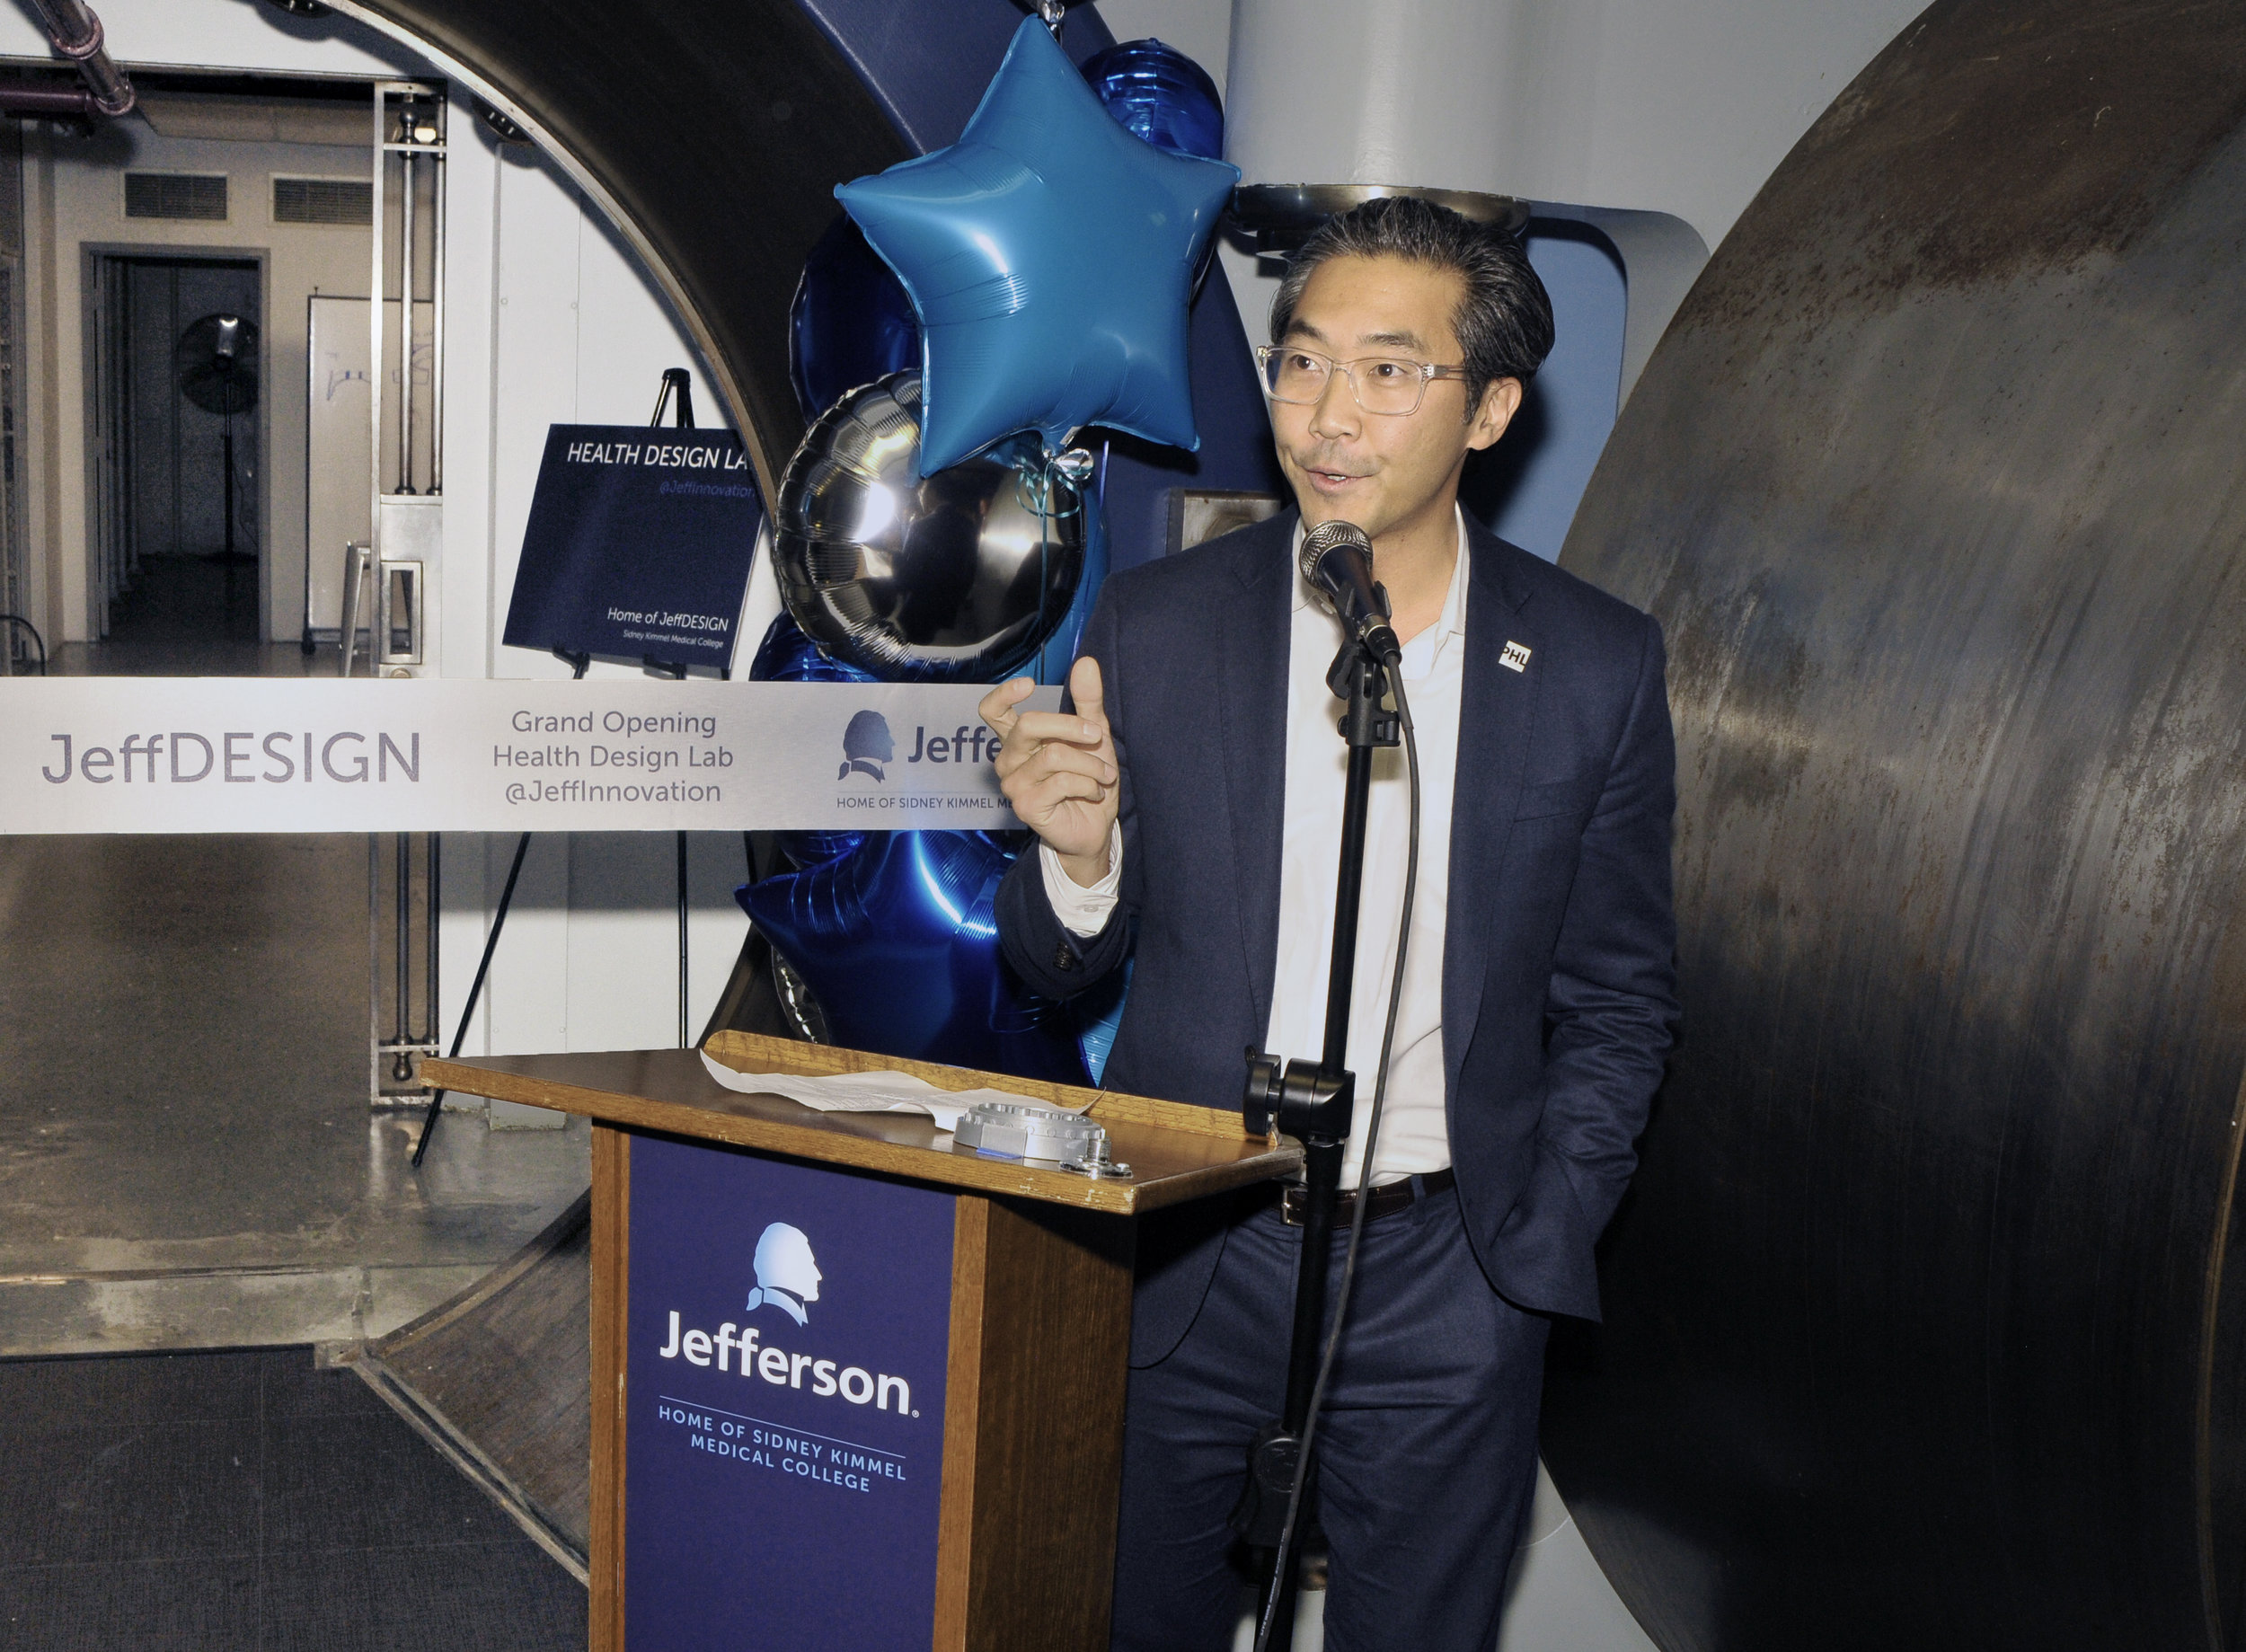 Opening Night! - On opening night, Dr. Ku spoke about the exciting work that the students of JeffDESIGN have been doing since the program began and how the new space will help accelerate innovation and grass roots change in healthcare.